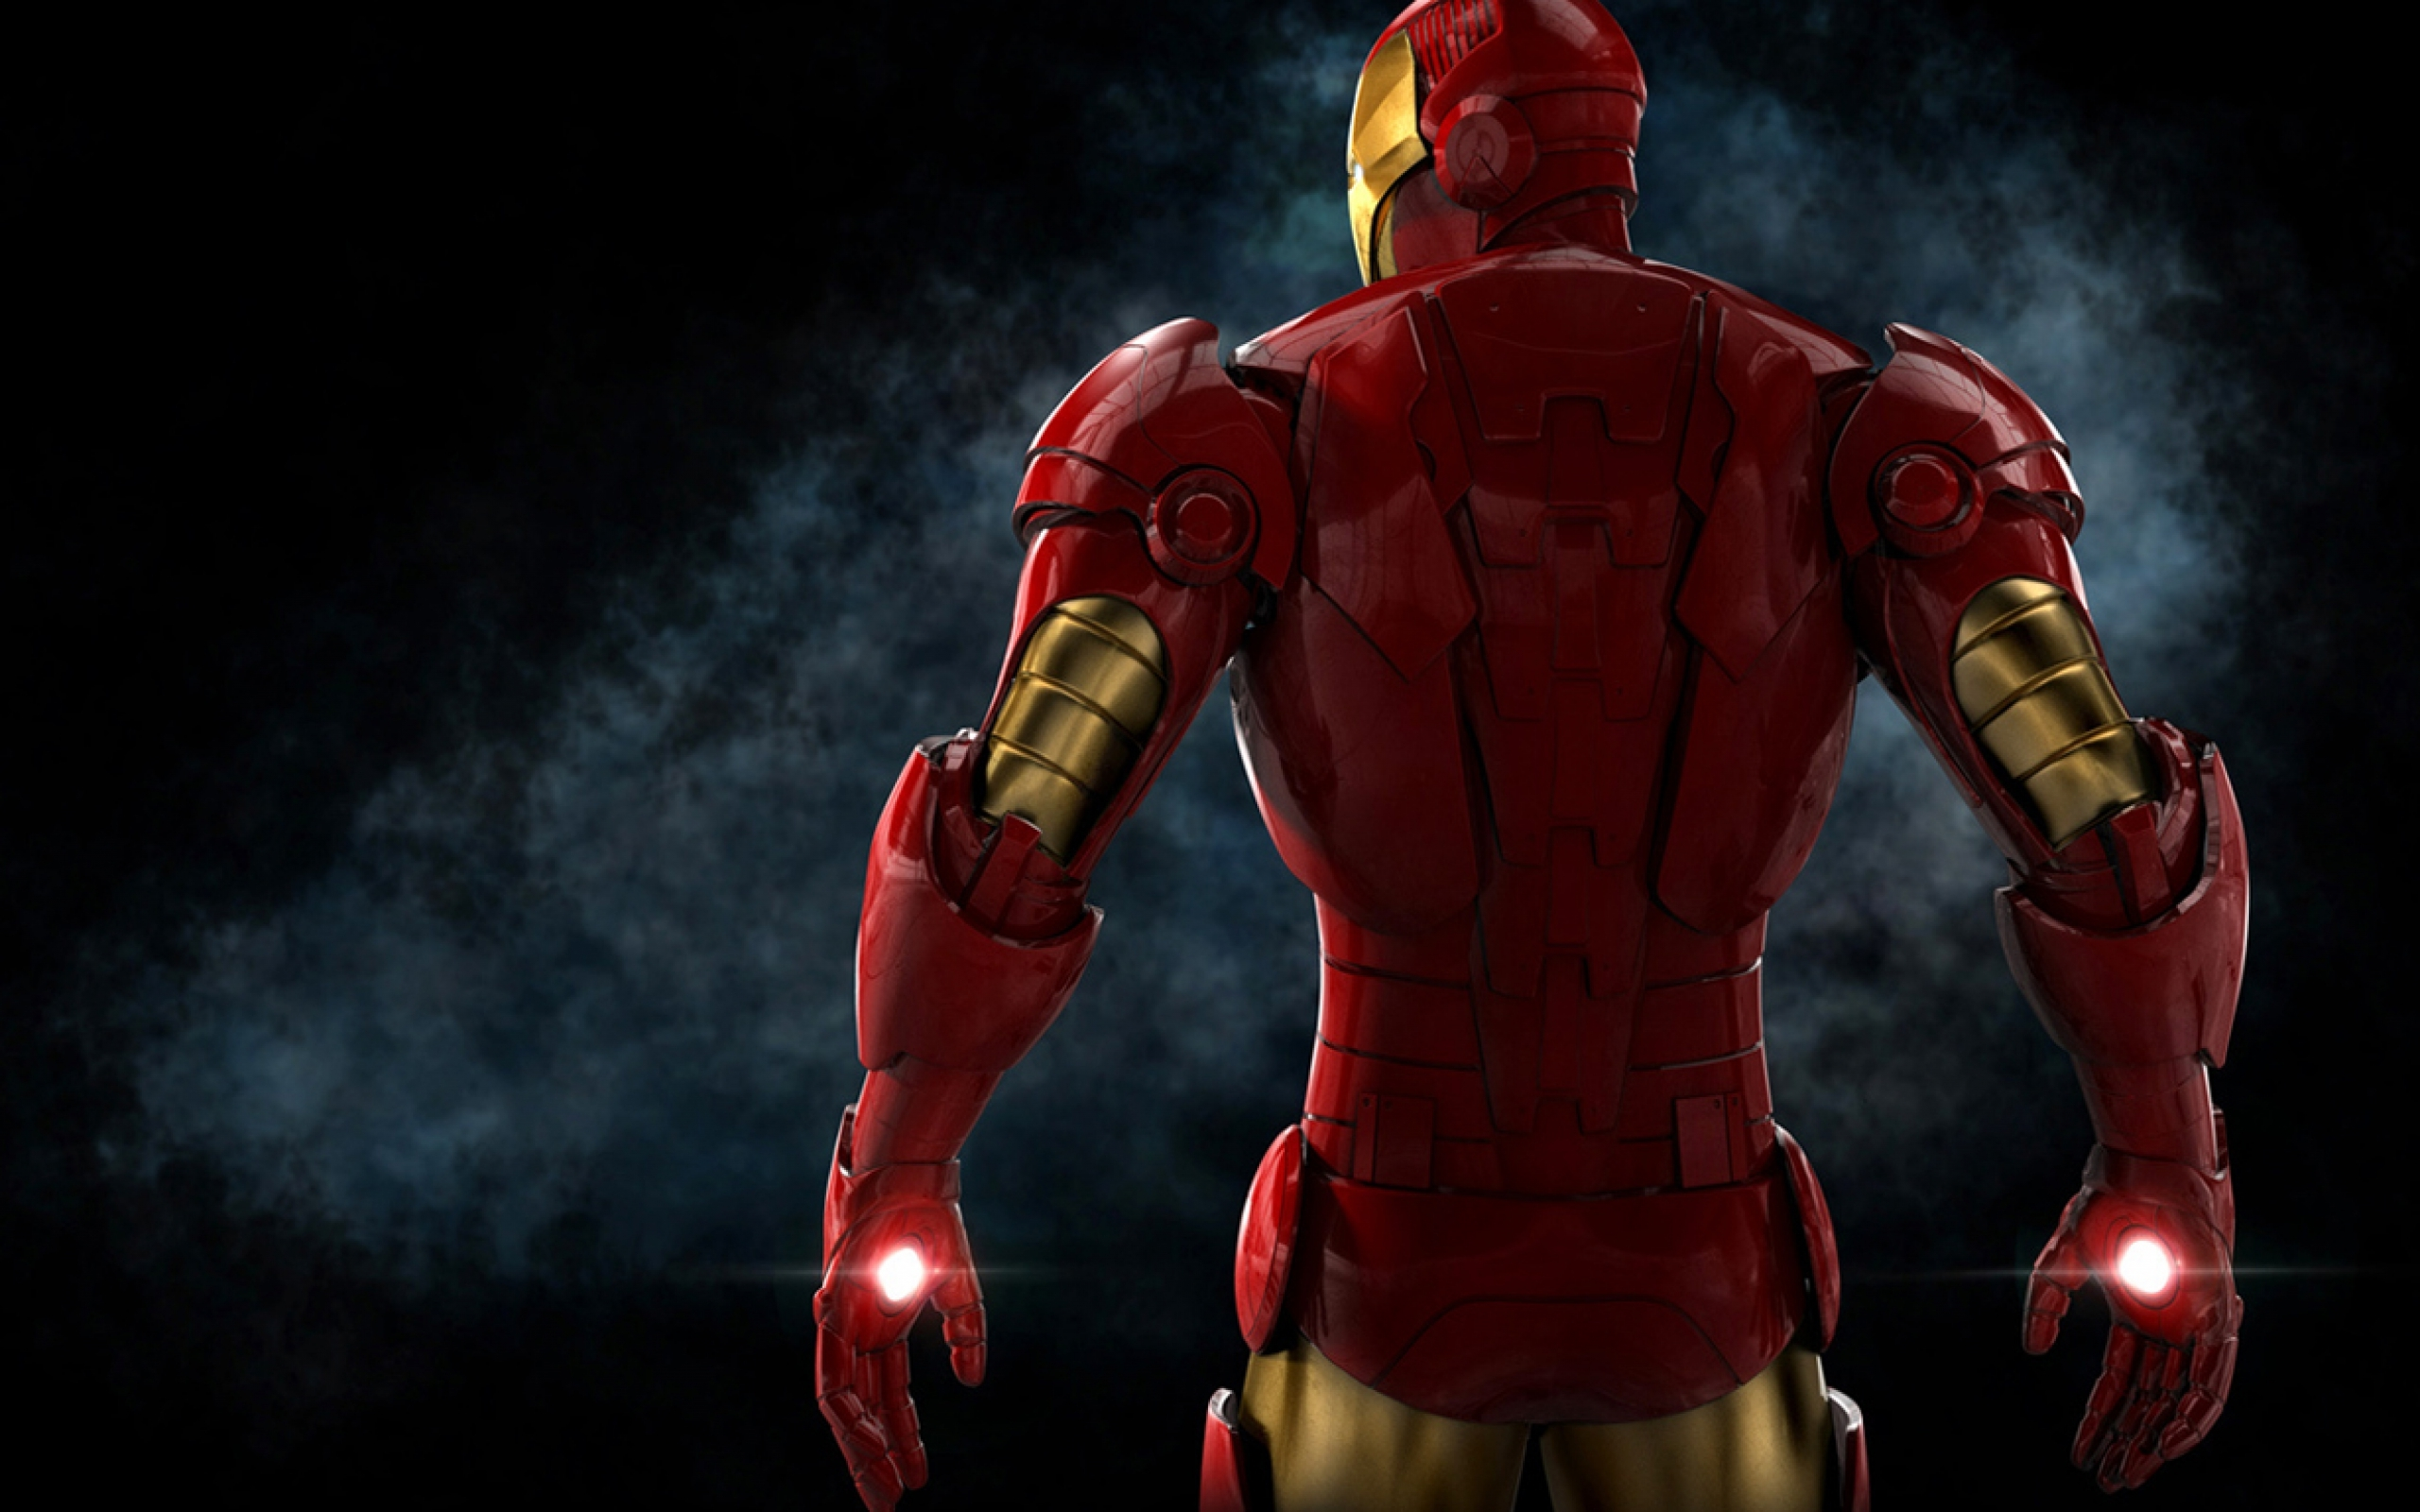 fantastic ironman wallpaper 41963